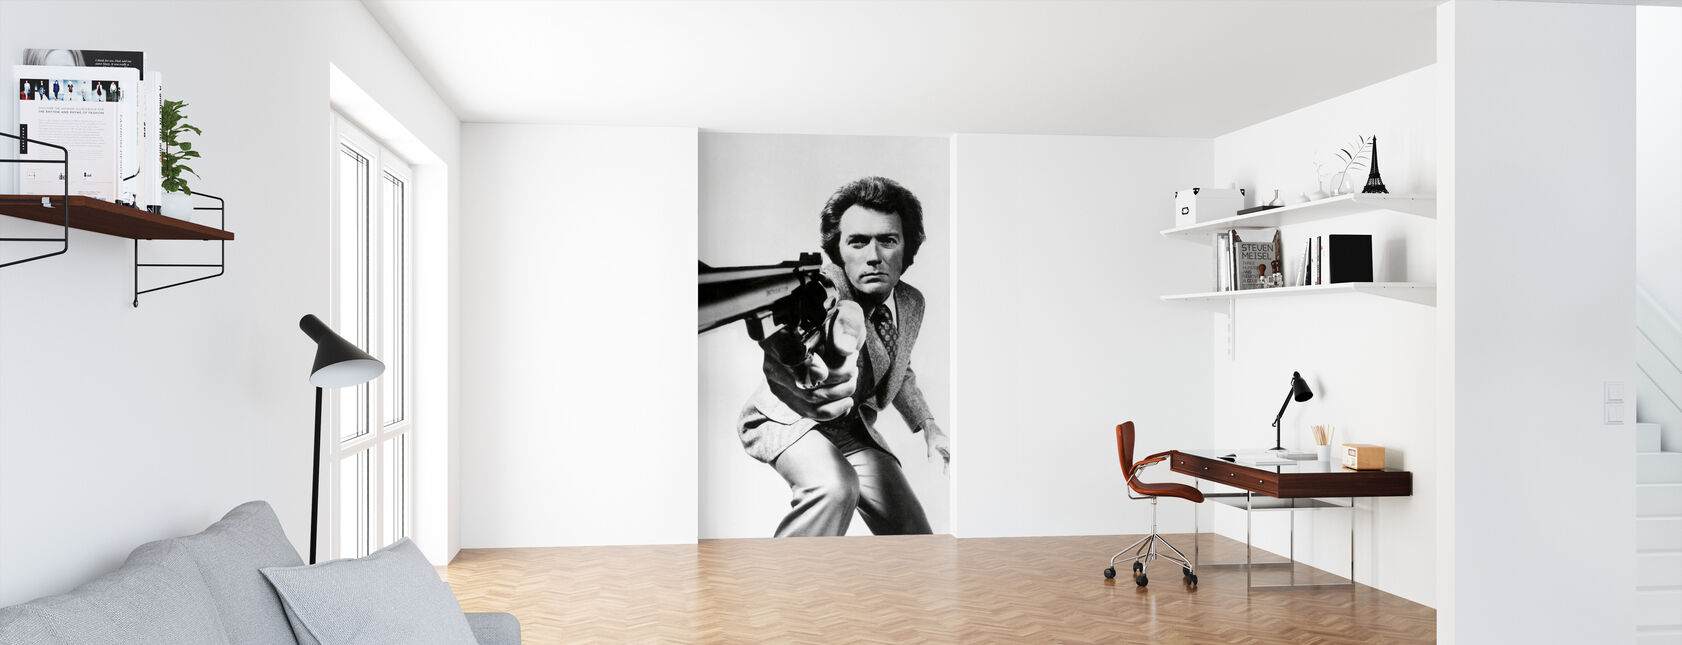 Clint Eastwood i Magnum Force - Tapet - Kontor